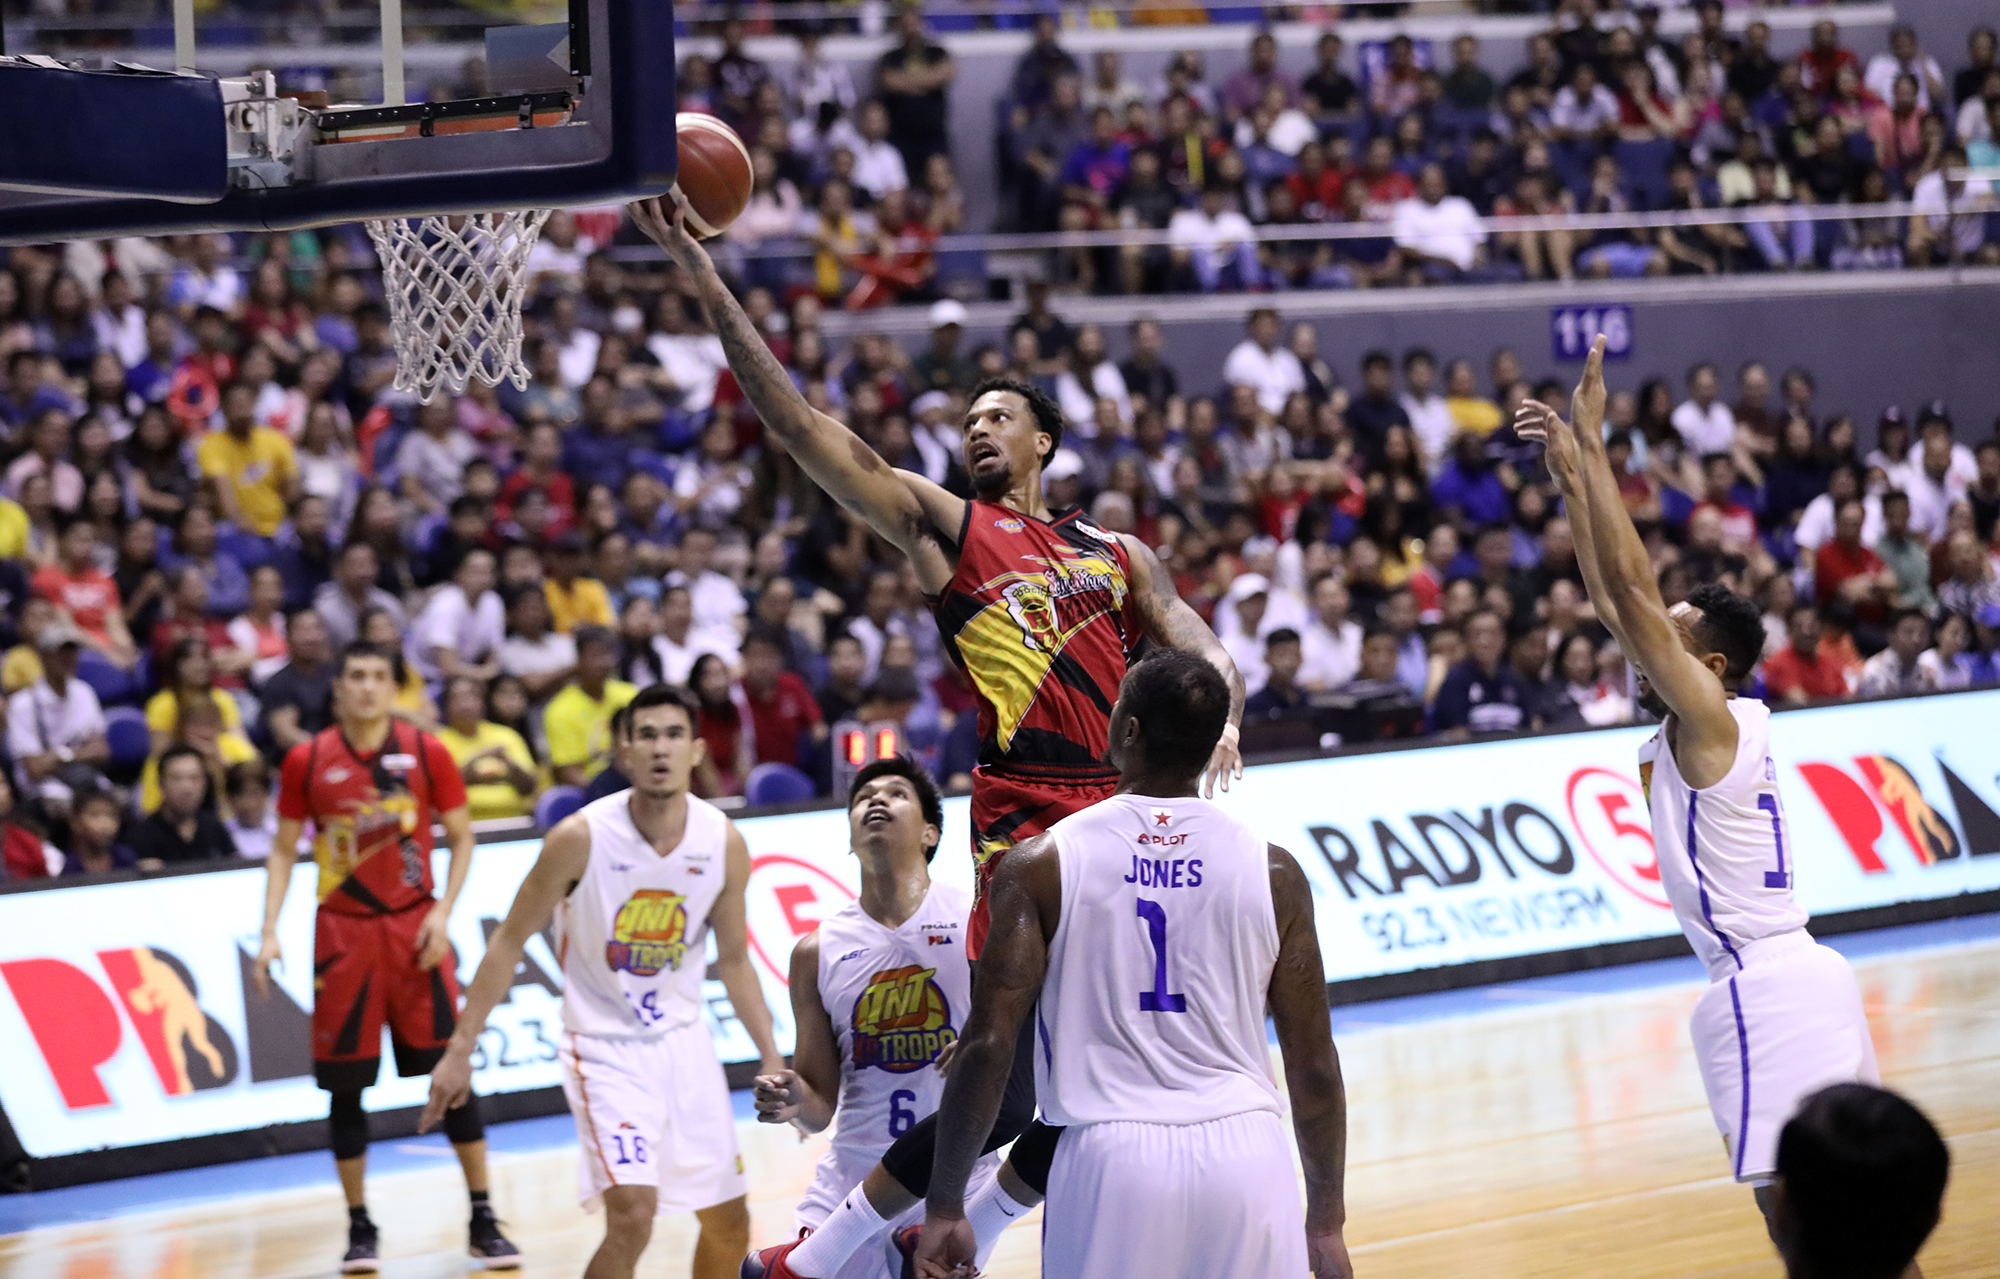 PBA Finals: Chris McCullough doesn't care about Best Import award, wants championship